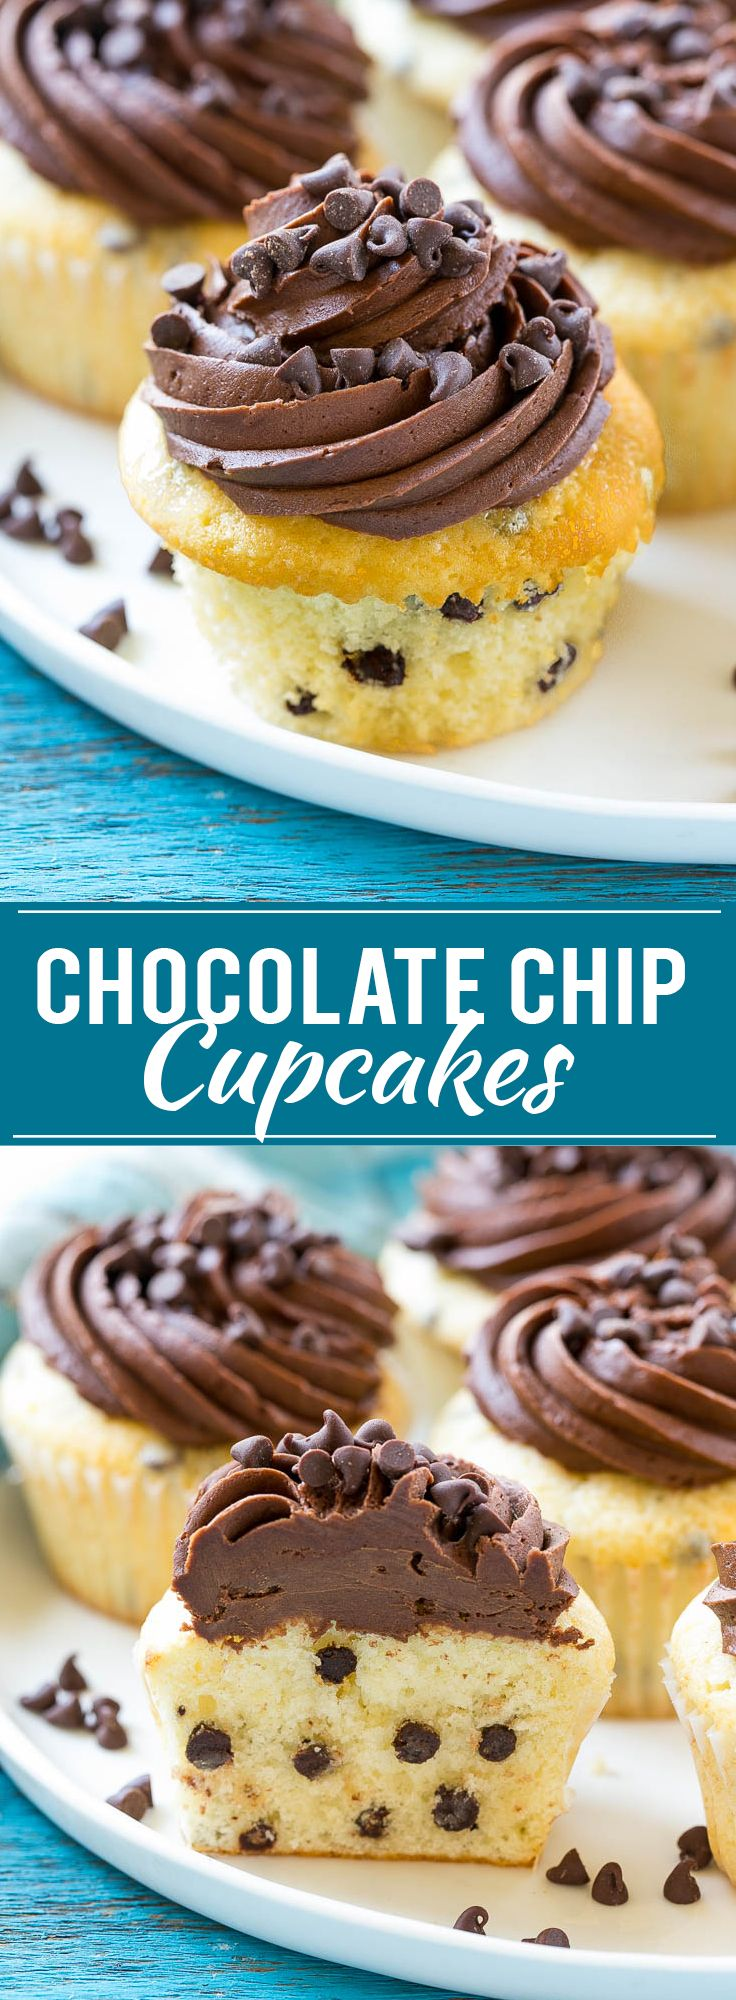 Chocolate Chip Cupcakes #Cupcake #Chocolate